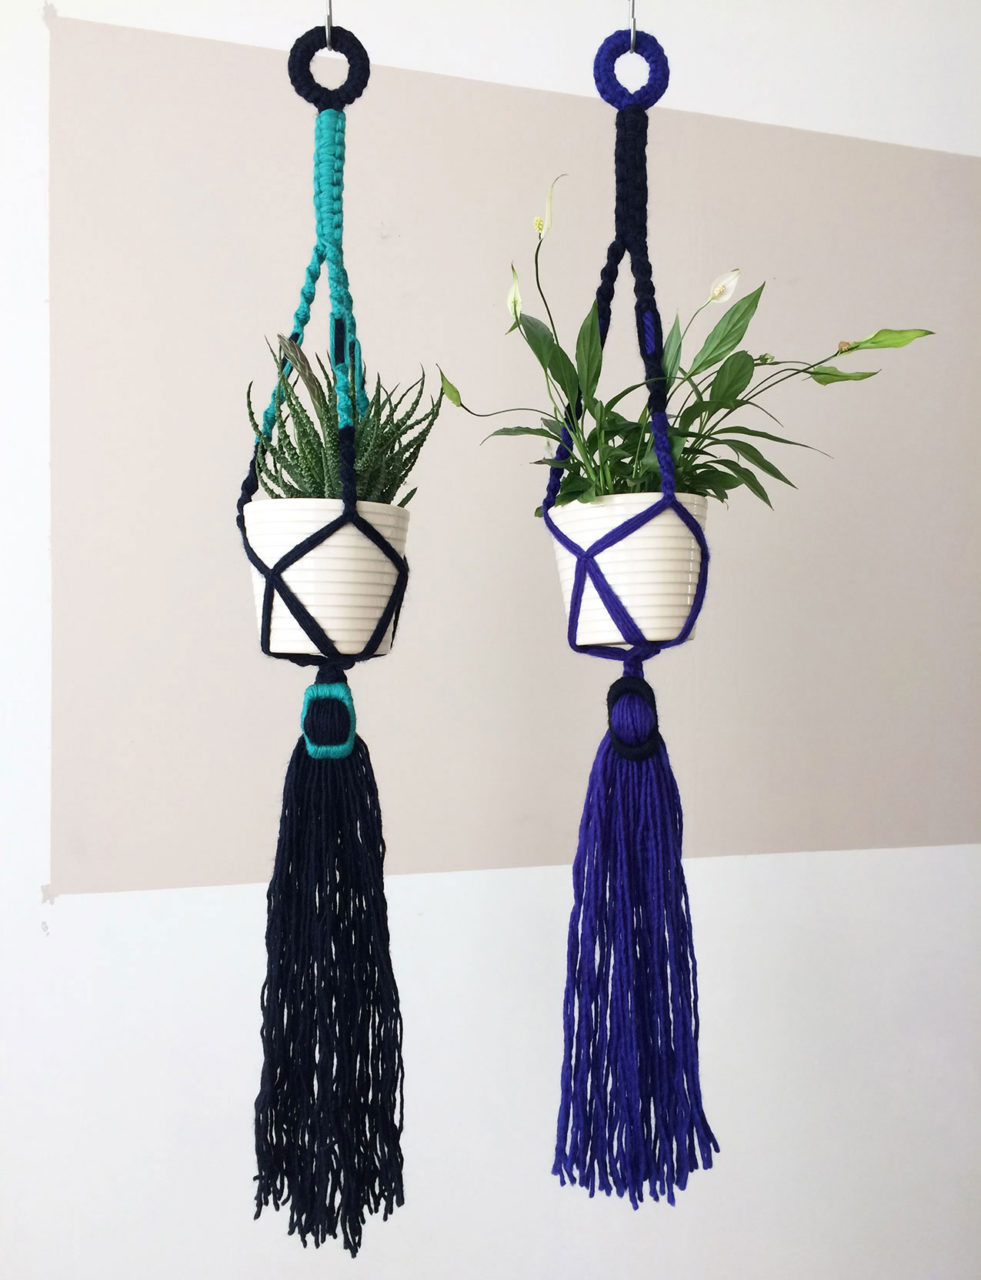 Buckle_Macrame_Plant_Hanger_AquaGreen_NavyBlue_AND_CobaltBlue_NavyBlue_3